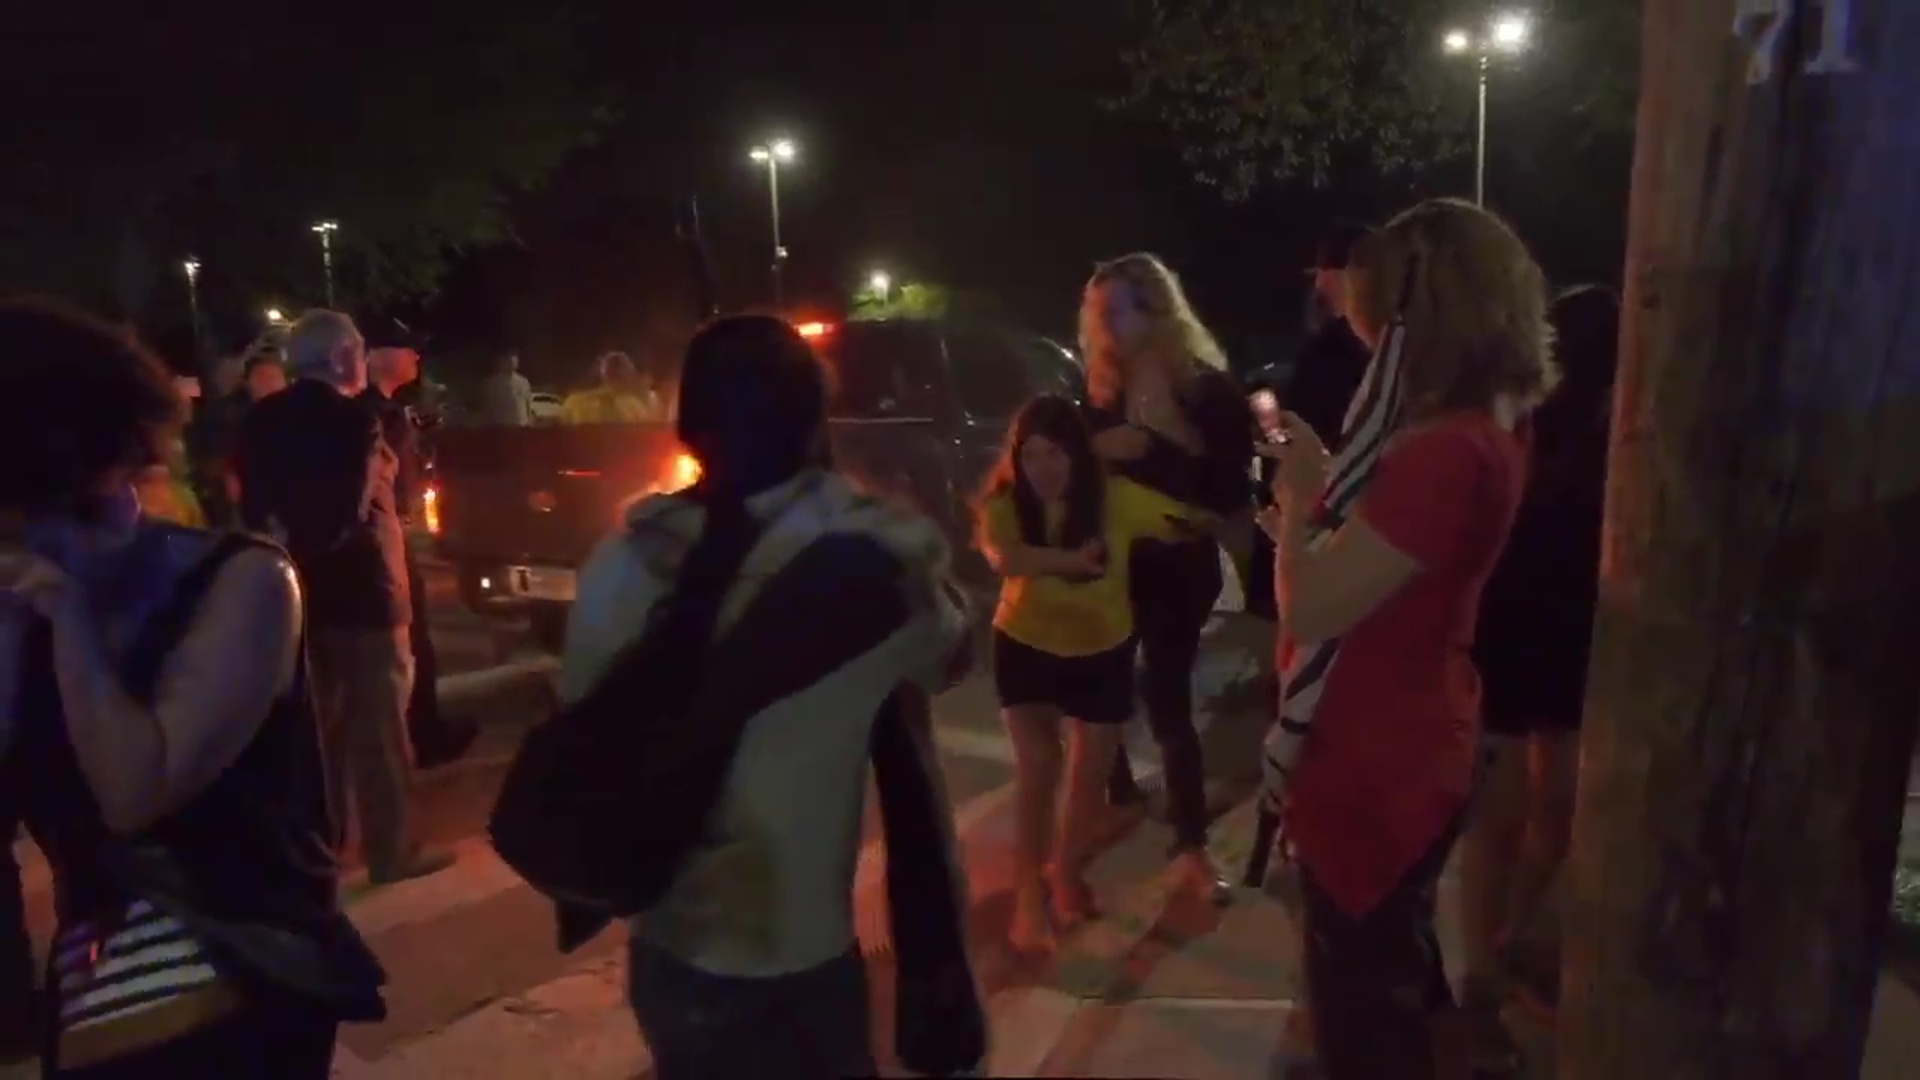 A still from video posted by Never Again Action shows demonstrators sicked by pepper-spray outside the Wyatt Detention Facility in Central Falls, Wednesday, Aug. 15, 2019. (WJAR)